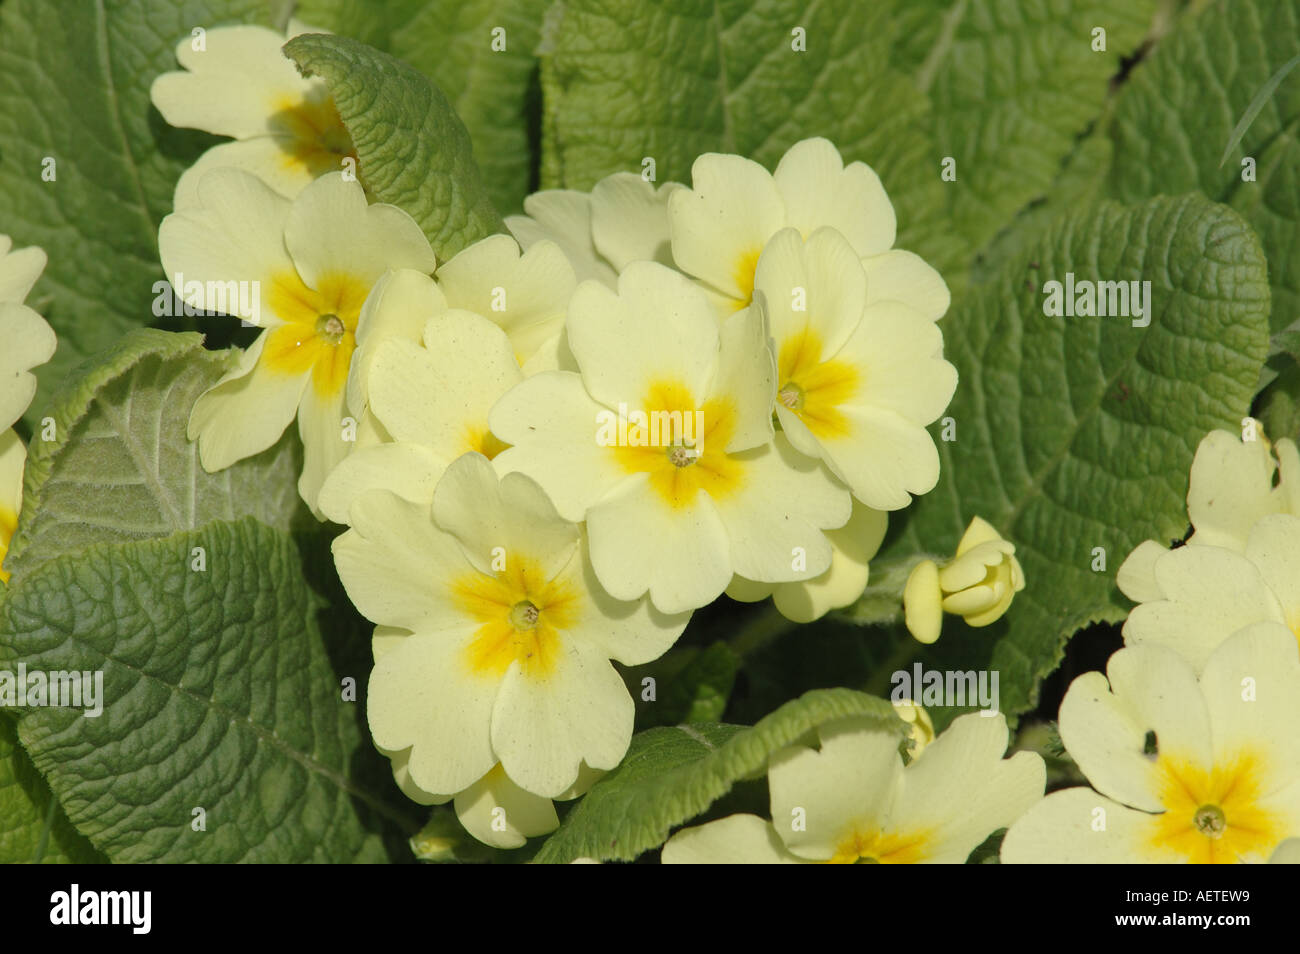 Pale yellow flowers of the primrose stock photo 7858968 alamy pale yellow flowers of the primrose mightylinksfo Choice Image